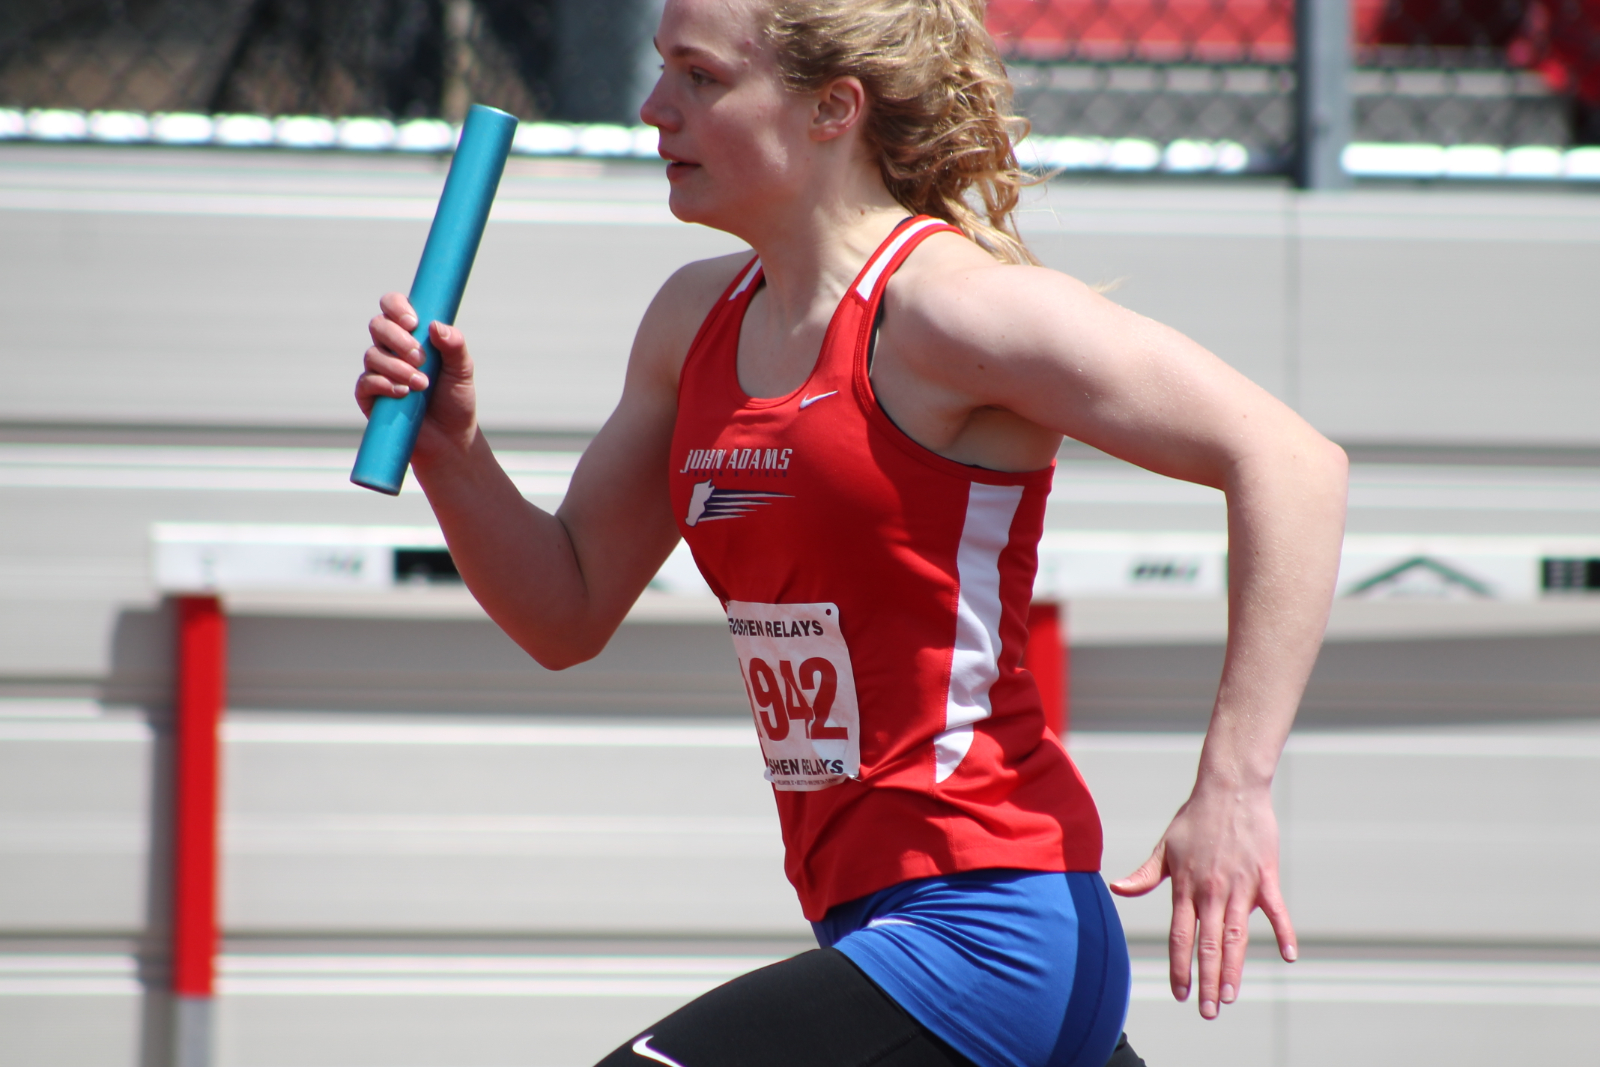 Girls Track and Field Goshen Relays (May 8)